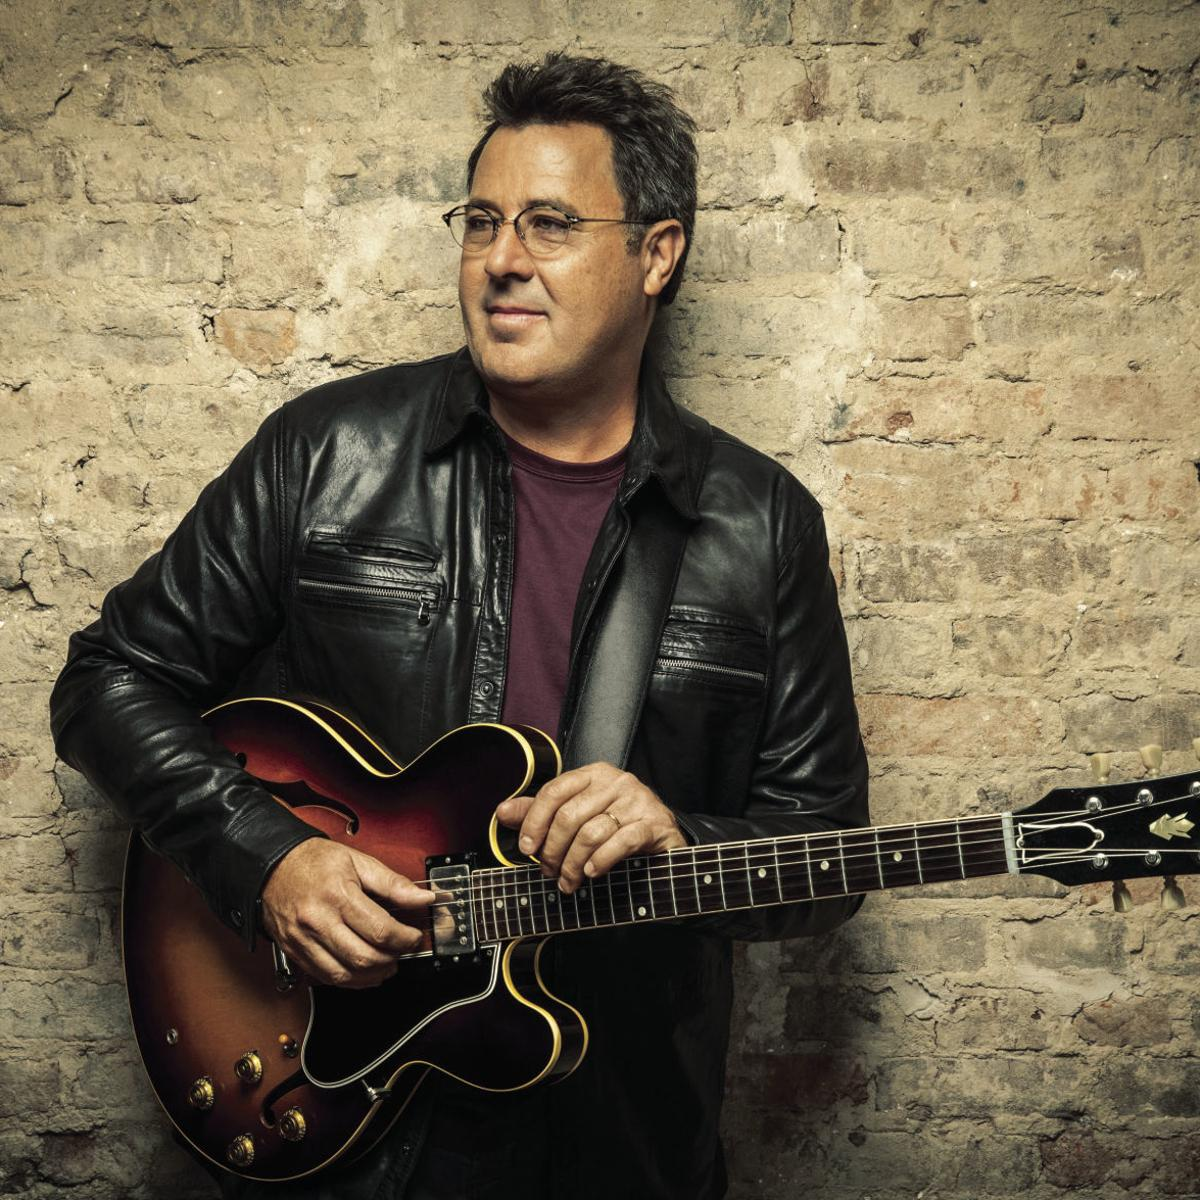 Vince Gill to perform at Adler Theatre Aug. 14 | News ... on